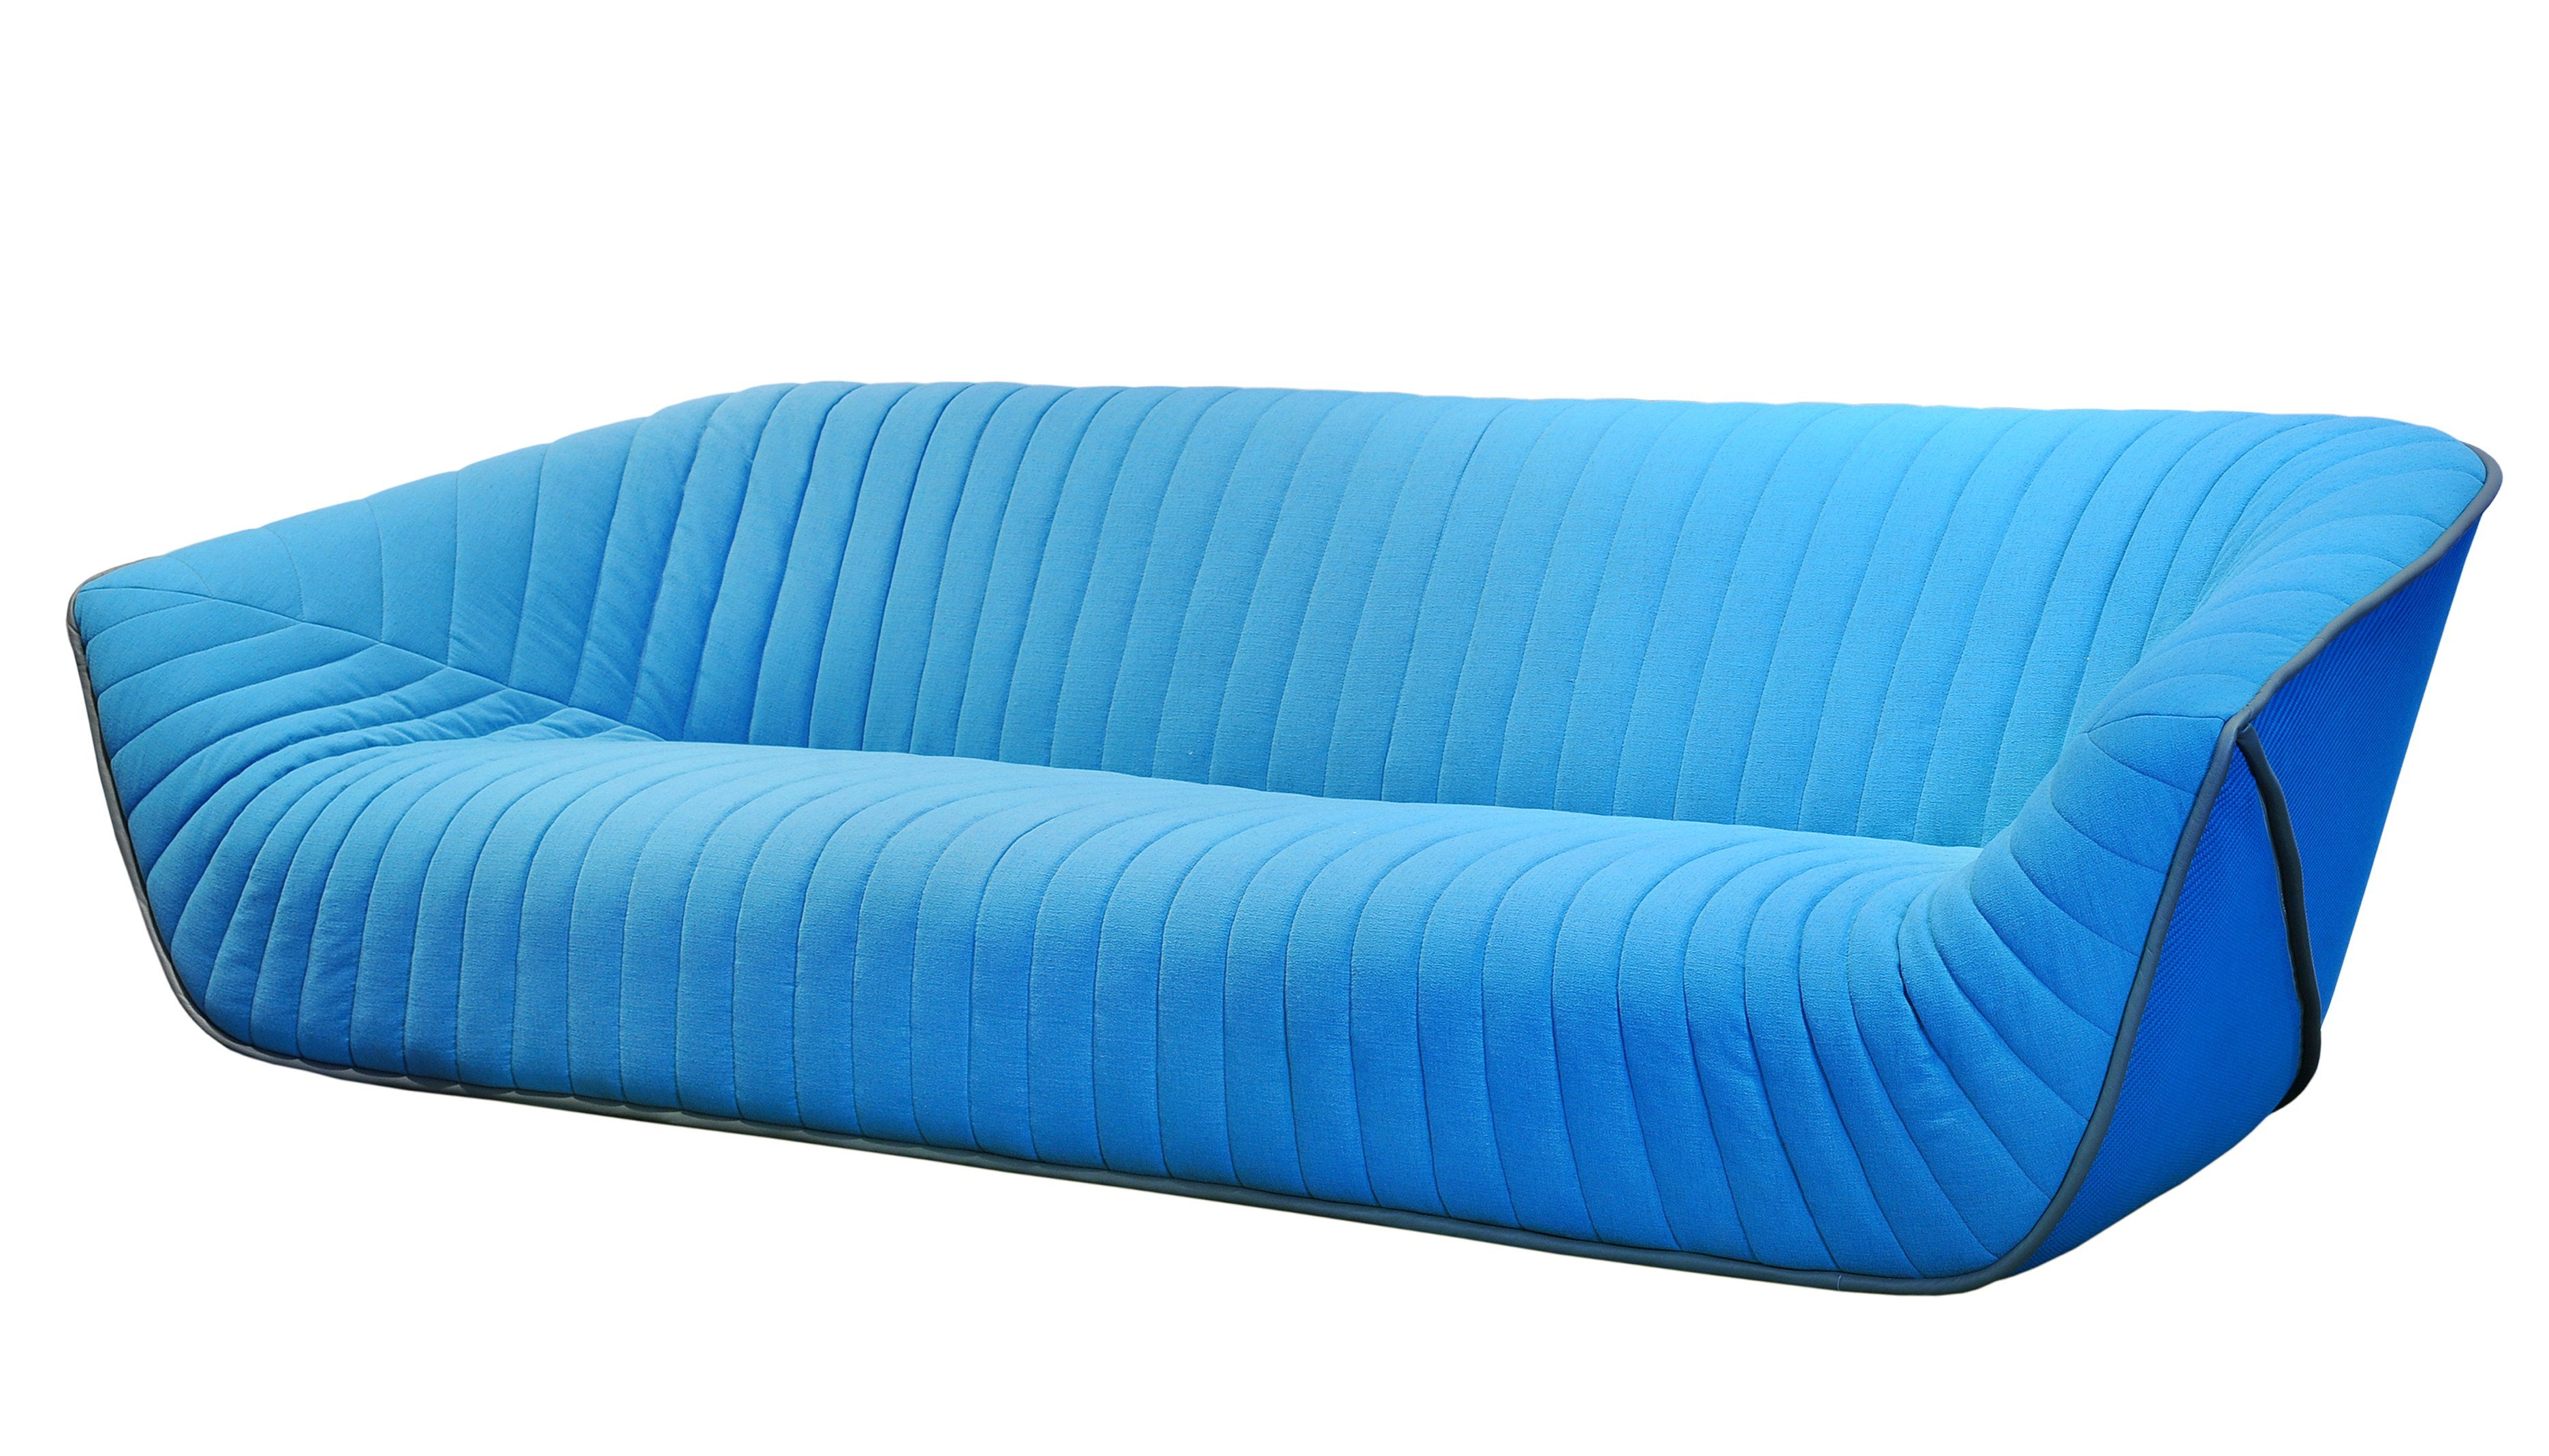 Canap 4 places en tissu nautil by roche bobois design for Canape en solde roche bobois